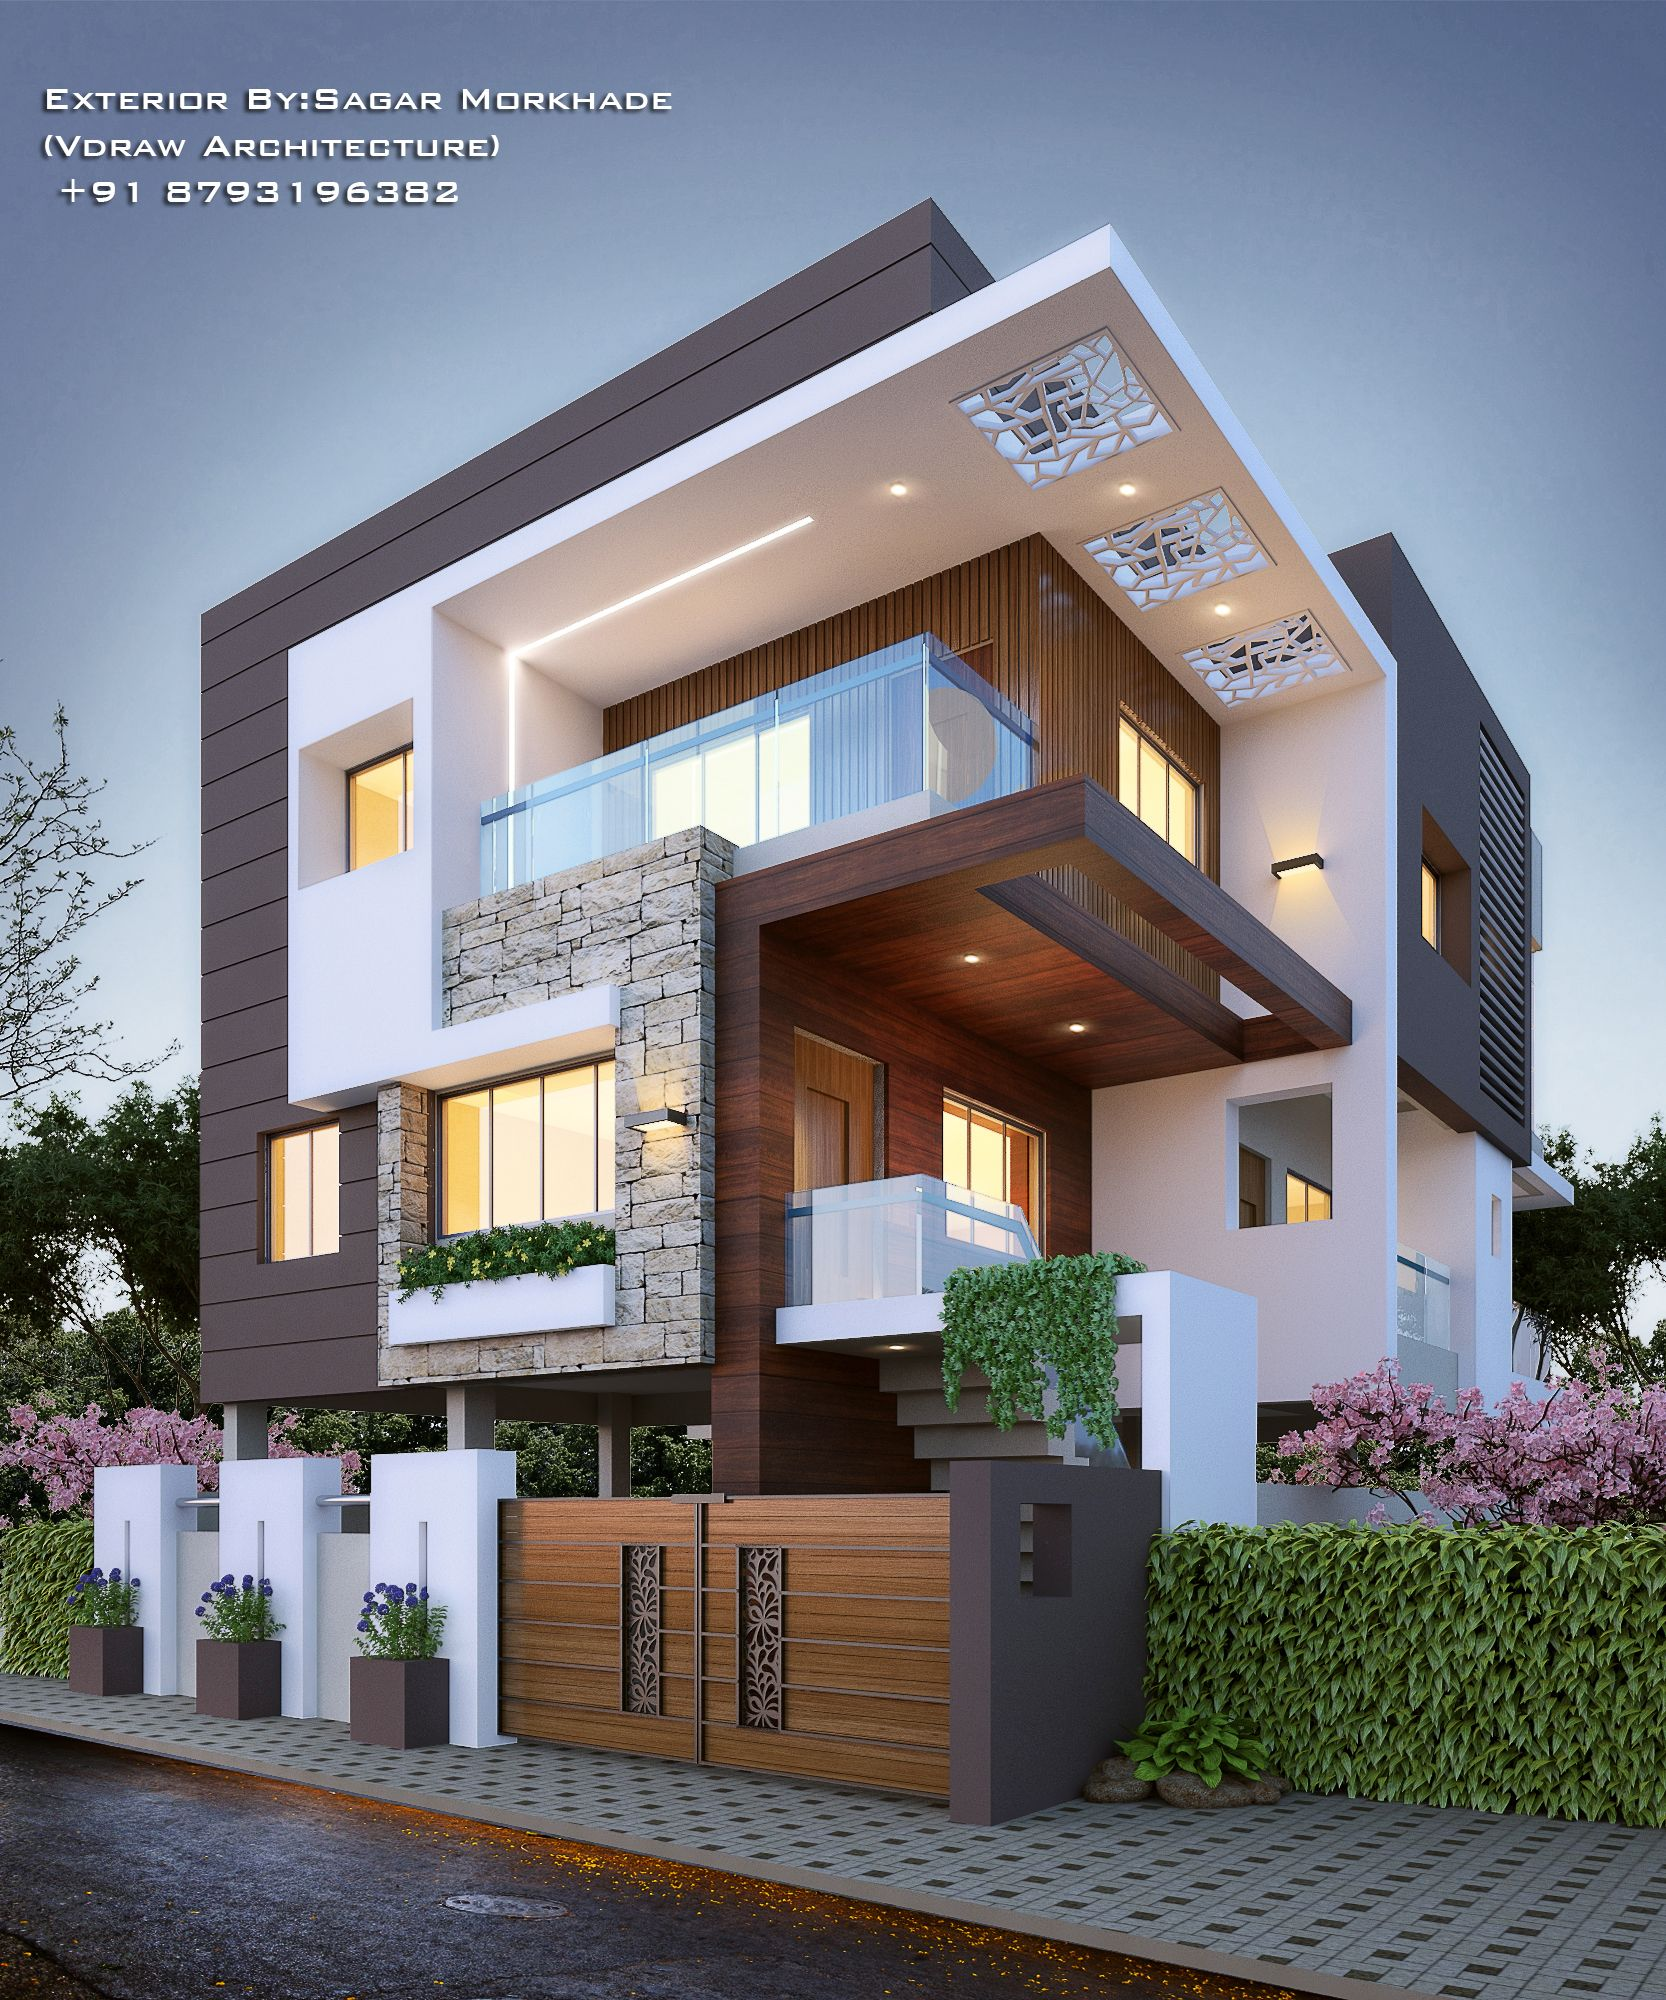 Exterior Small Home Design Ideas: #Modern #Residential #Exterior By, Ar. Sagar Morkhade